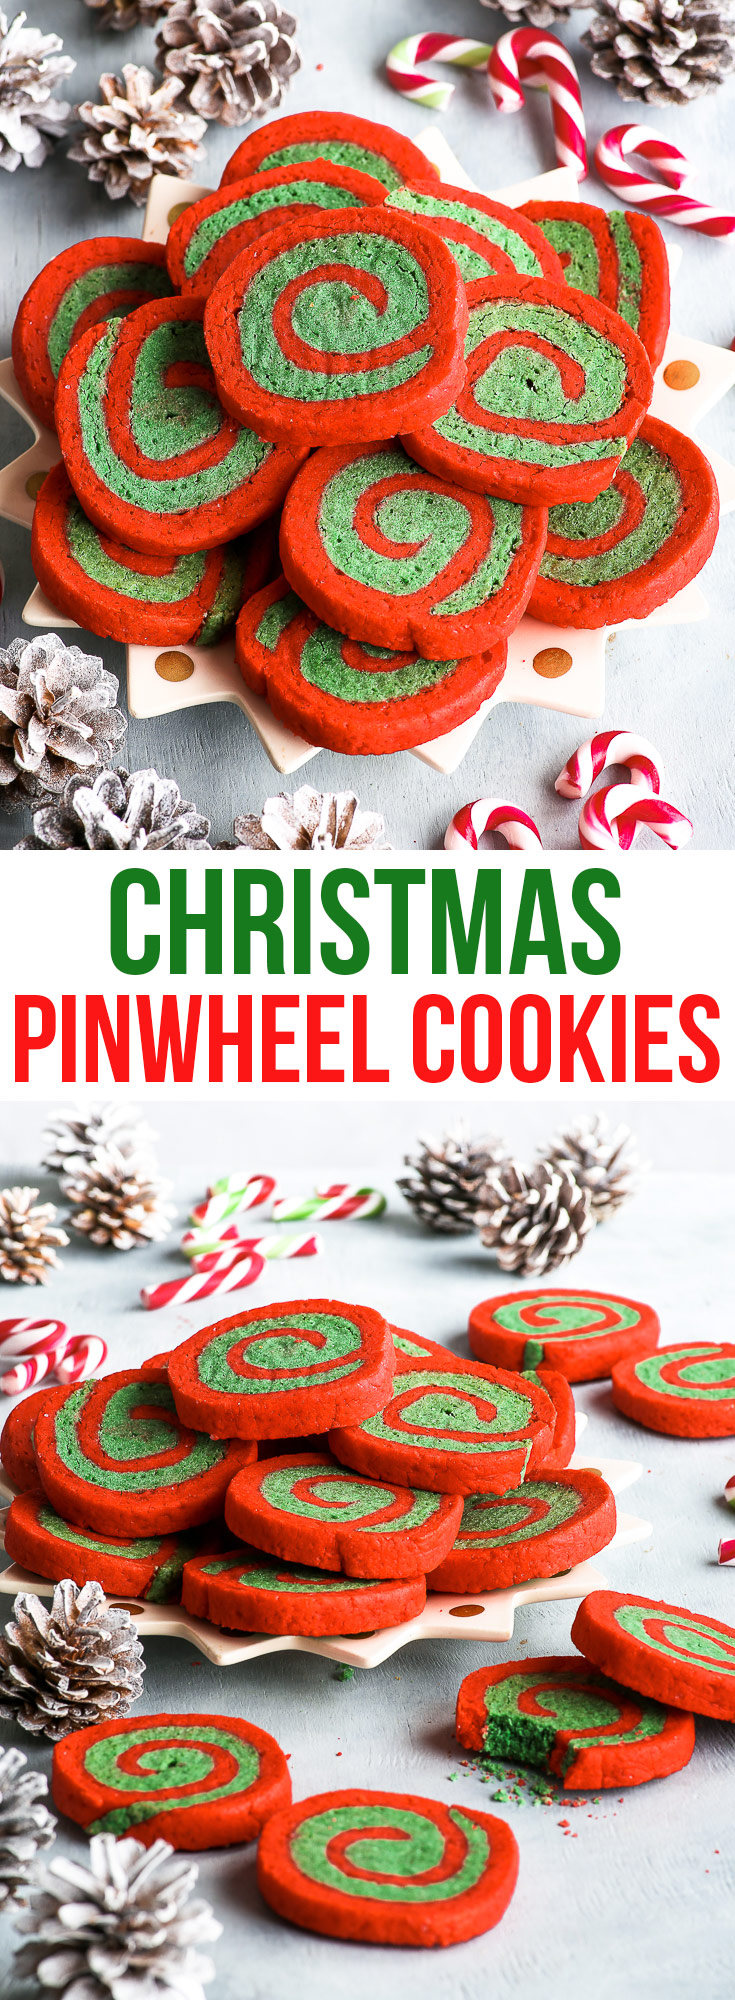 Gluten Free Christmas Pinwheel Cookies {gluten, nut & soy free} - Fun, quirky and adorable, these gluten free Christmas pinwheel cookies are bound to become a holiday favourite. A super easy holiday cookie recipe for pretty red and green Christmas cookies. #christmas #christmascookies #cookies #glutenfree